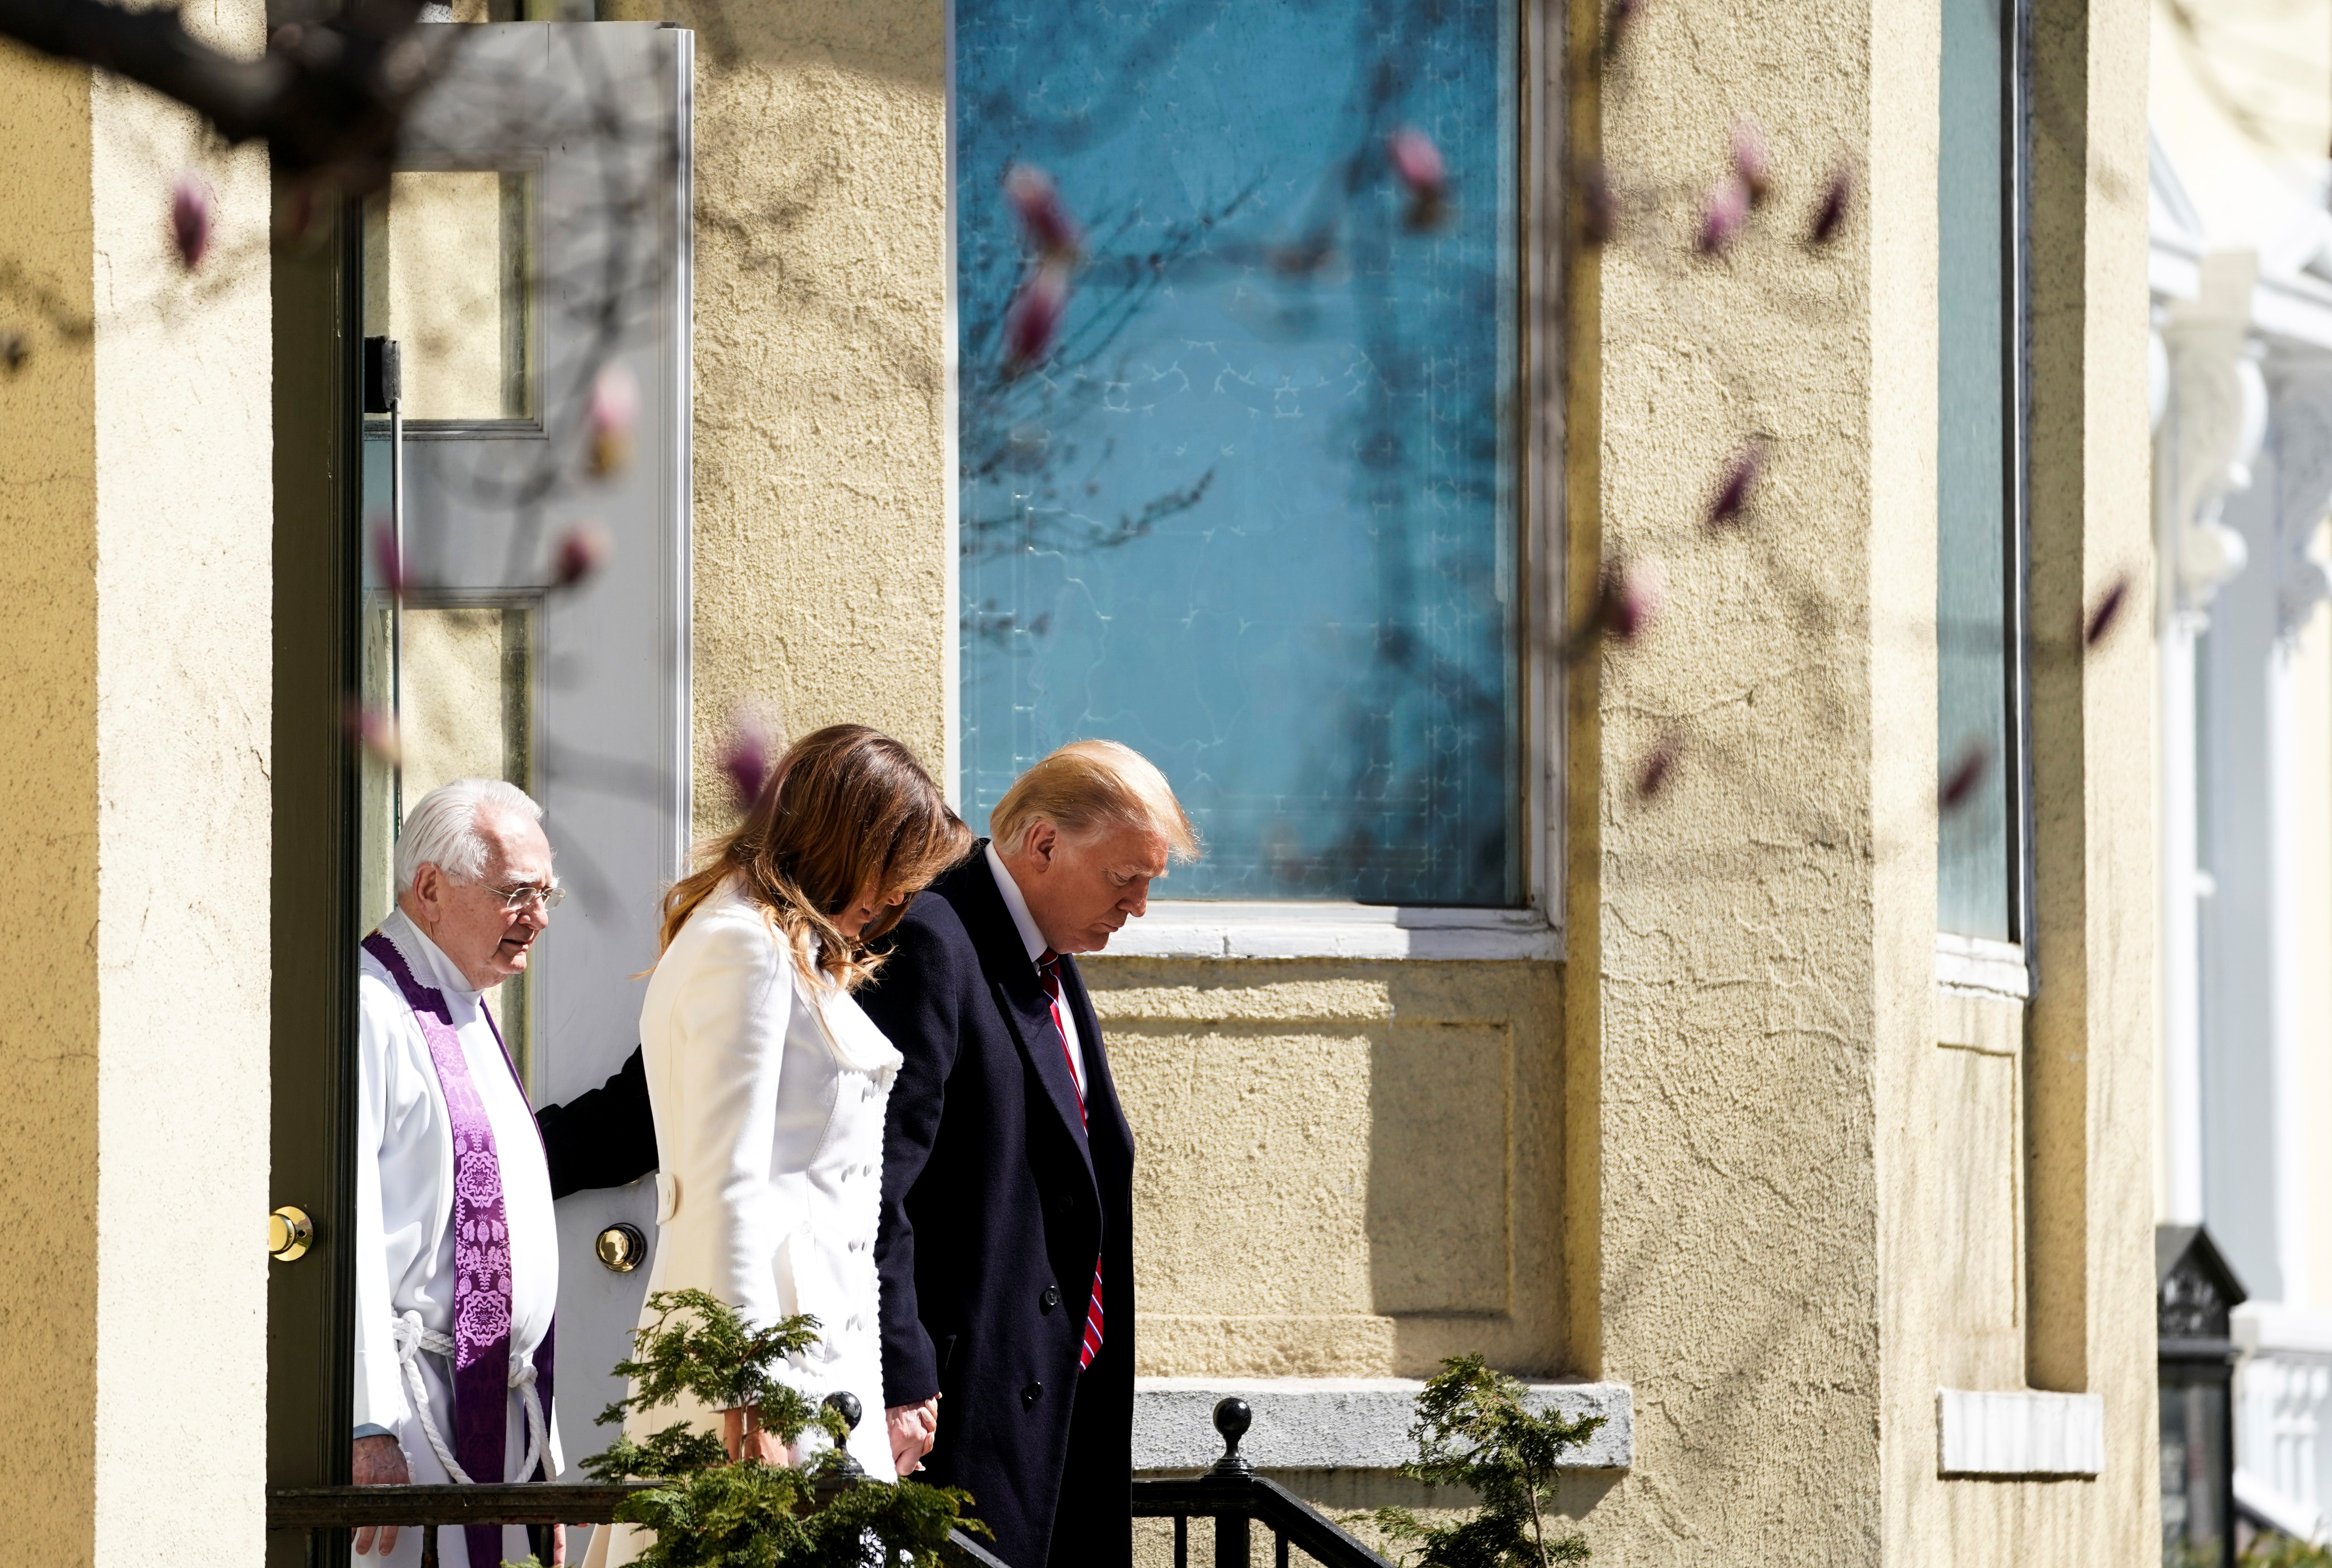 U.S. President Donald Trump and U.S. first lady Melania Trump walk with Interim Rector Reverend Bruce McPherson as they depart from St. John's Episcopal Church in Washington, U.S., March 17, 2019. REUTERS/Joshua Roberts